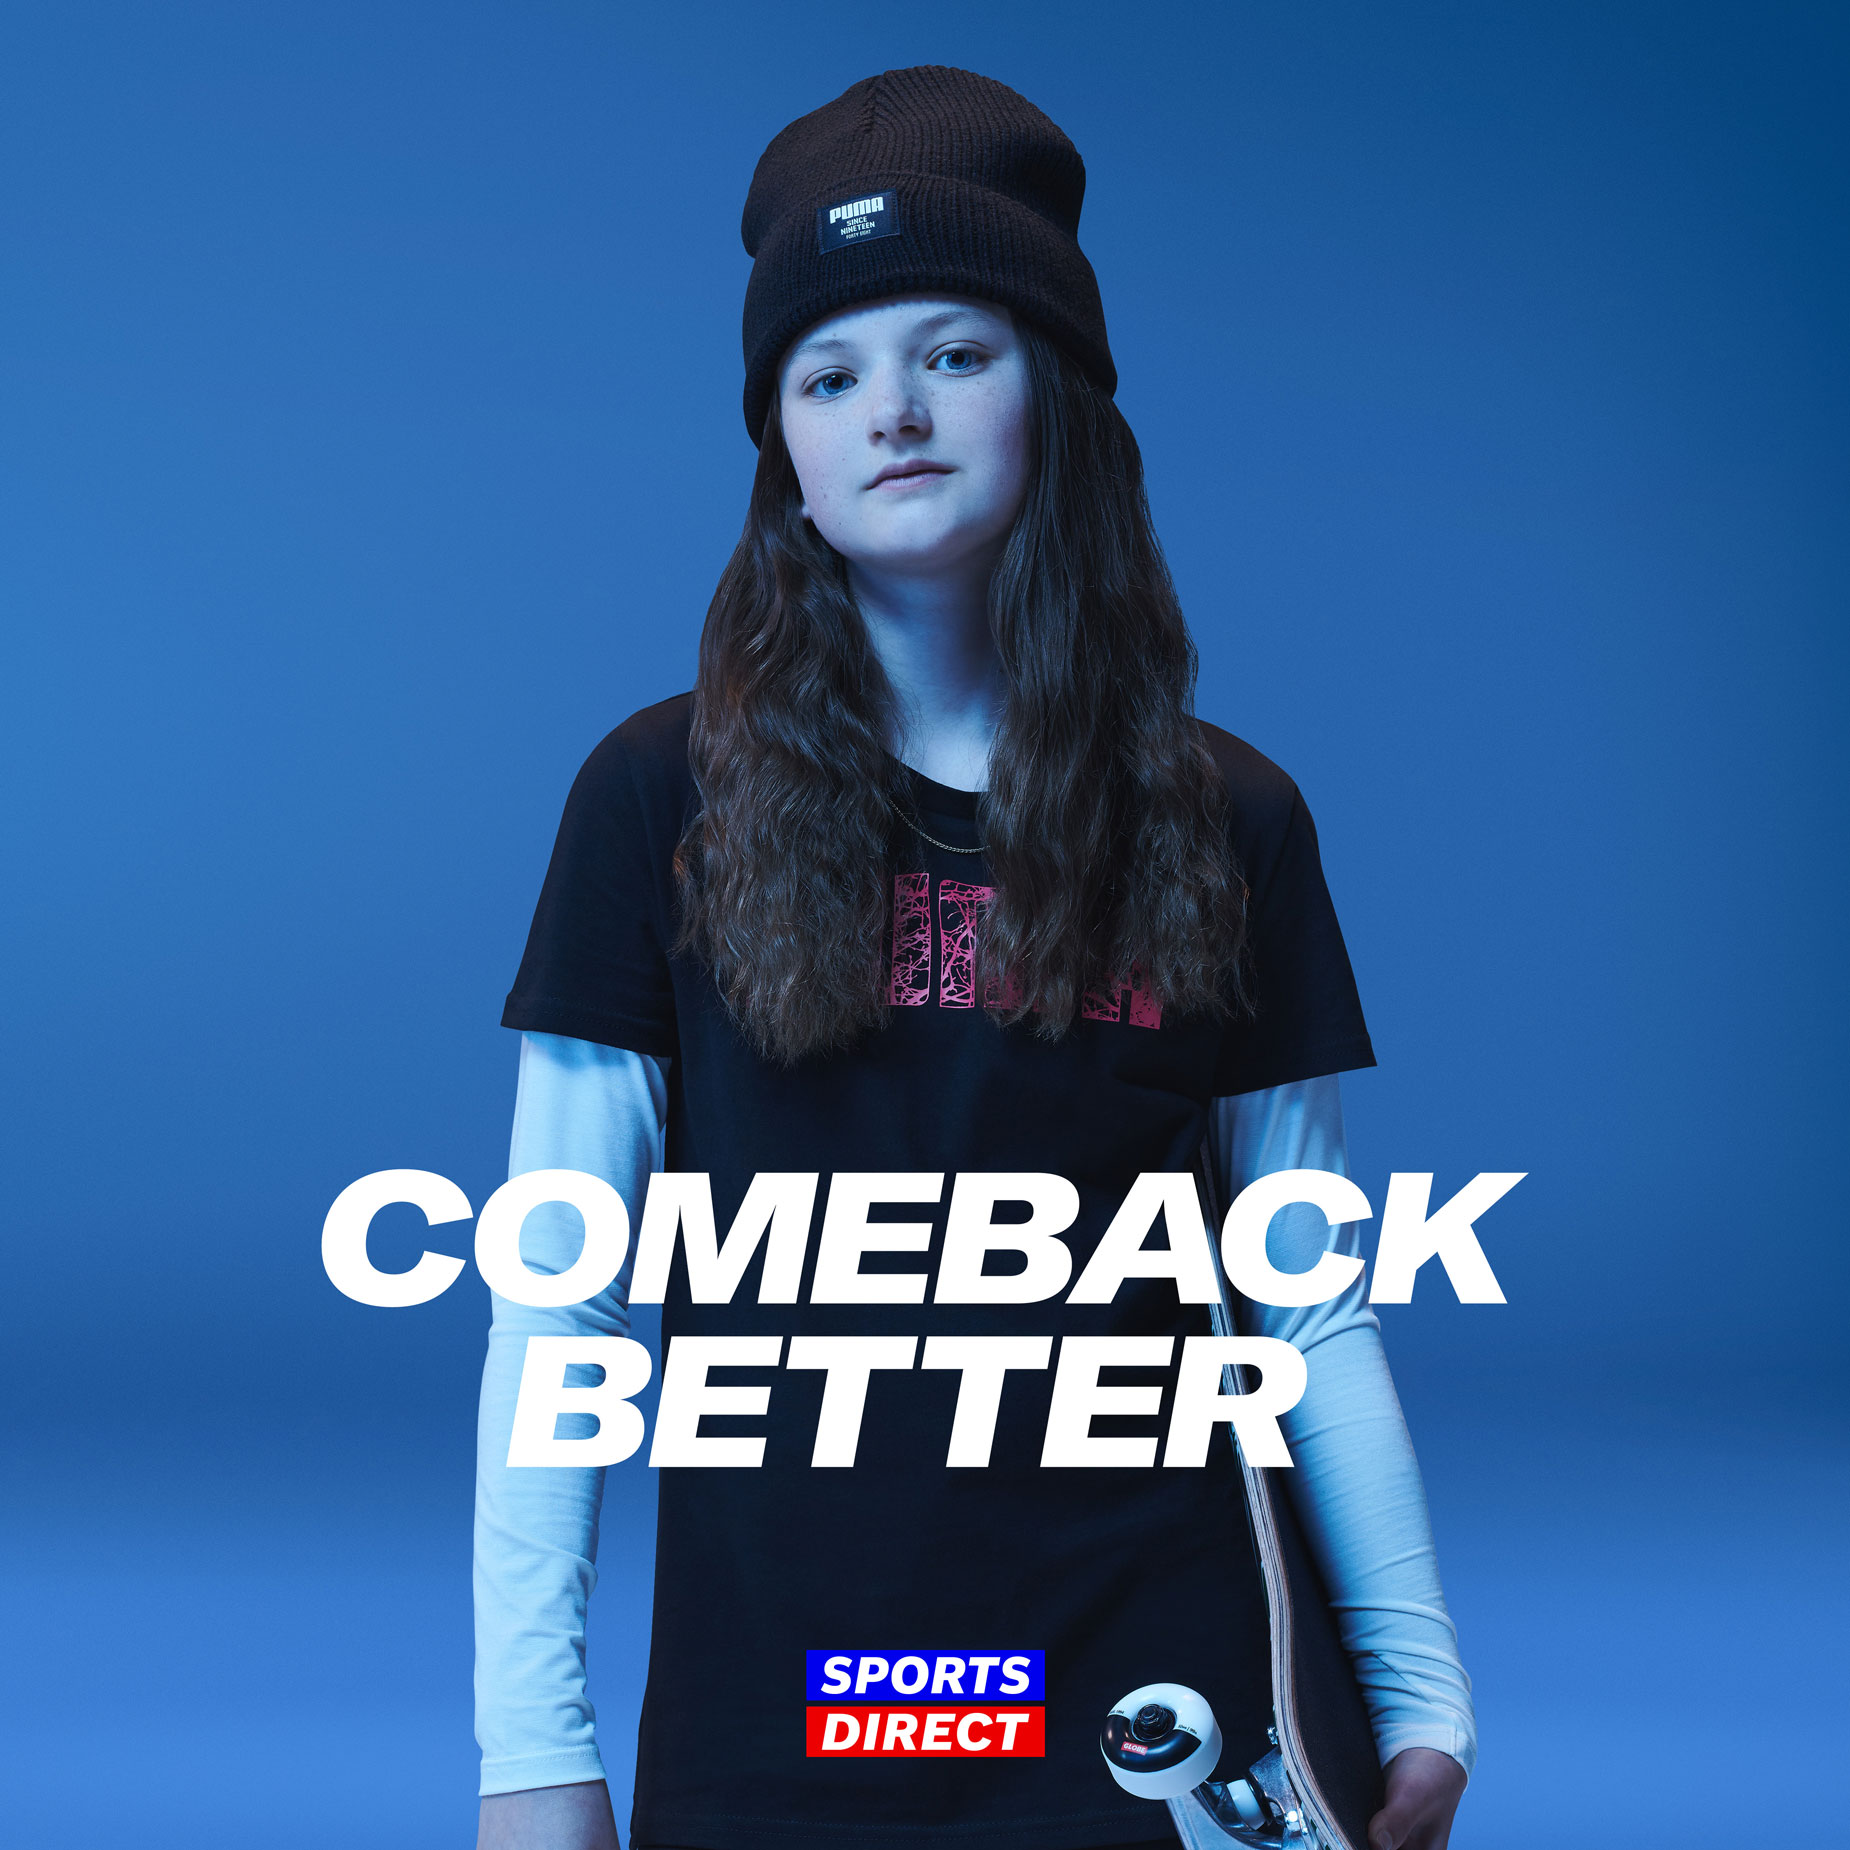 SD-Comeback-Better—Social-Square24